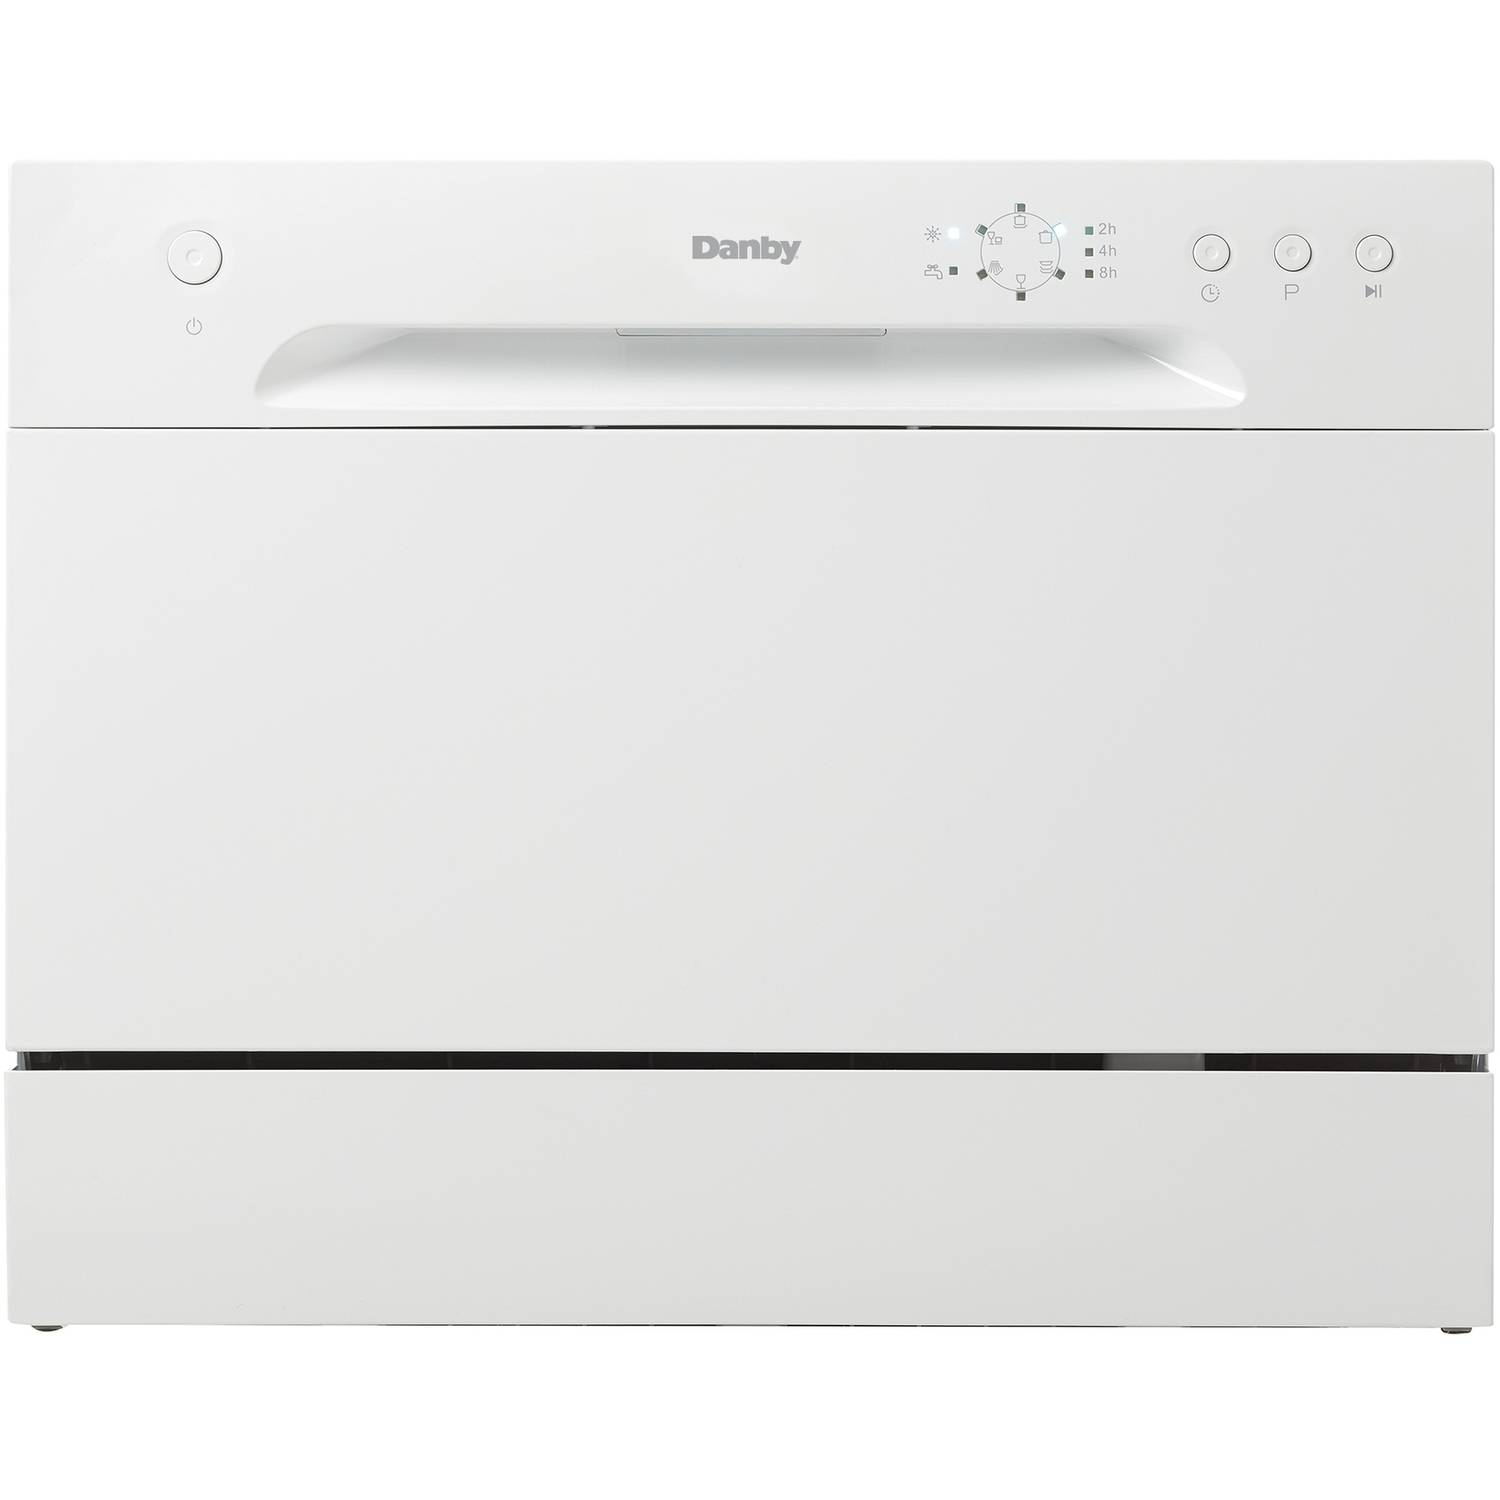 danby countertop dishwasher 6 place setting ss interior